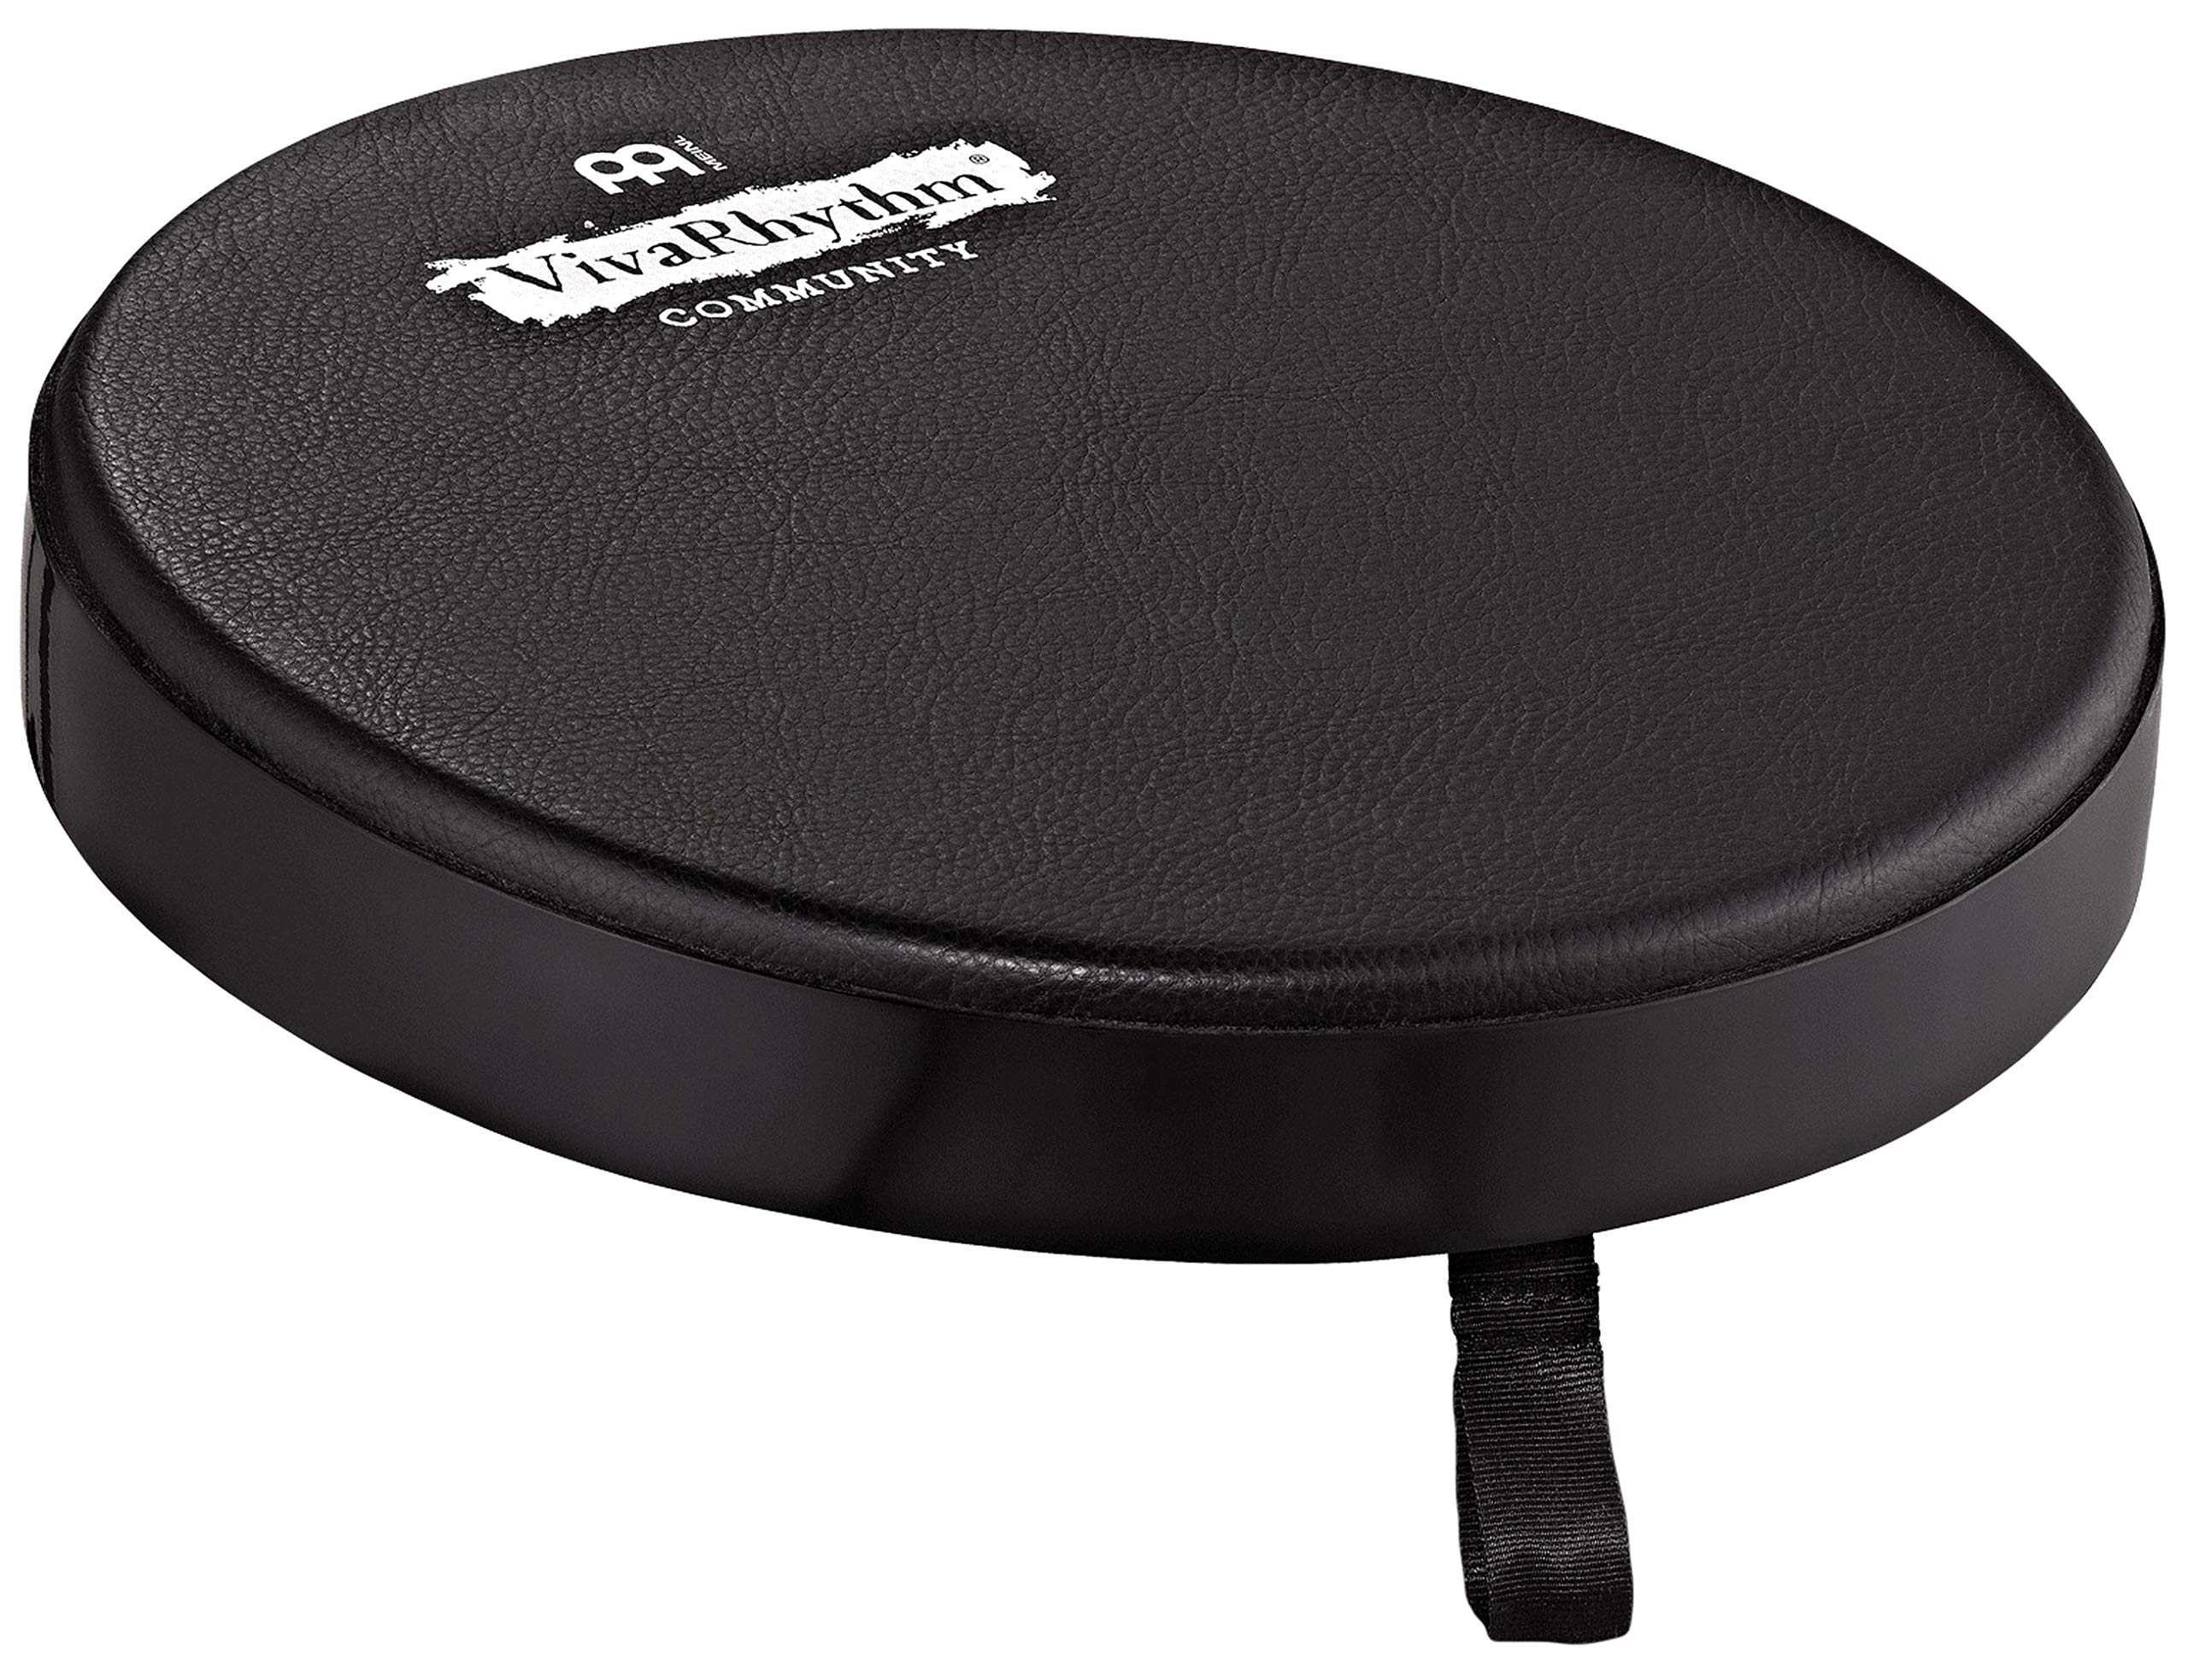 Meinl VivaRhythm 10'' Removable Pop Off Napa Head for Viva Rhythm Bass Drums - NOT MADE IN CHINA - Pretuned, Perfect for Outdoor Use (VR-POHBD10-NH)